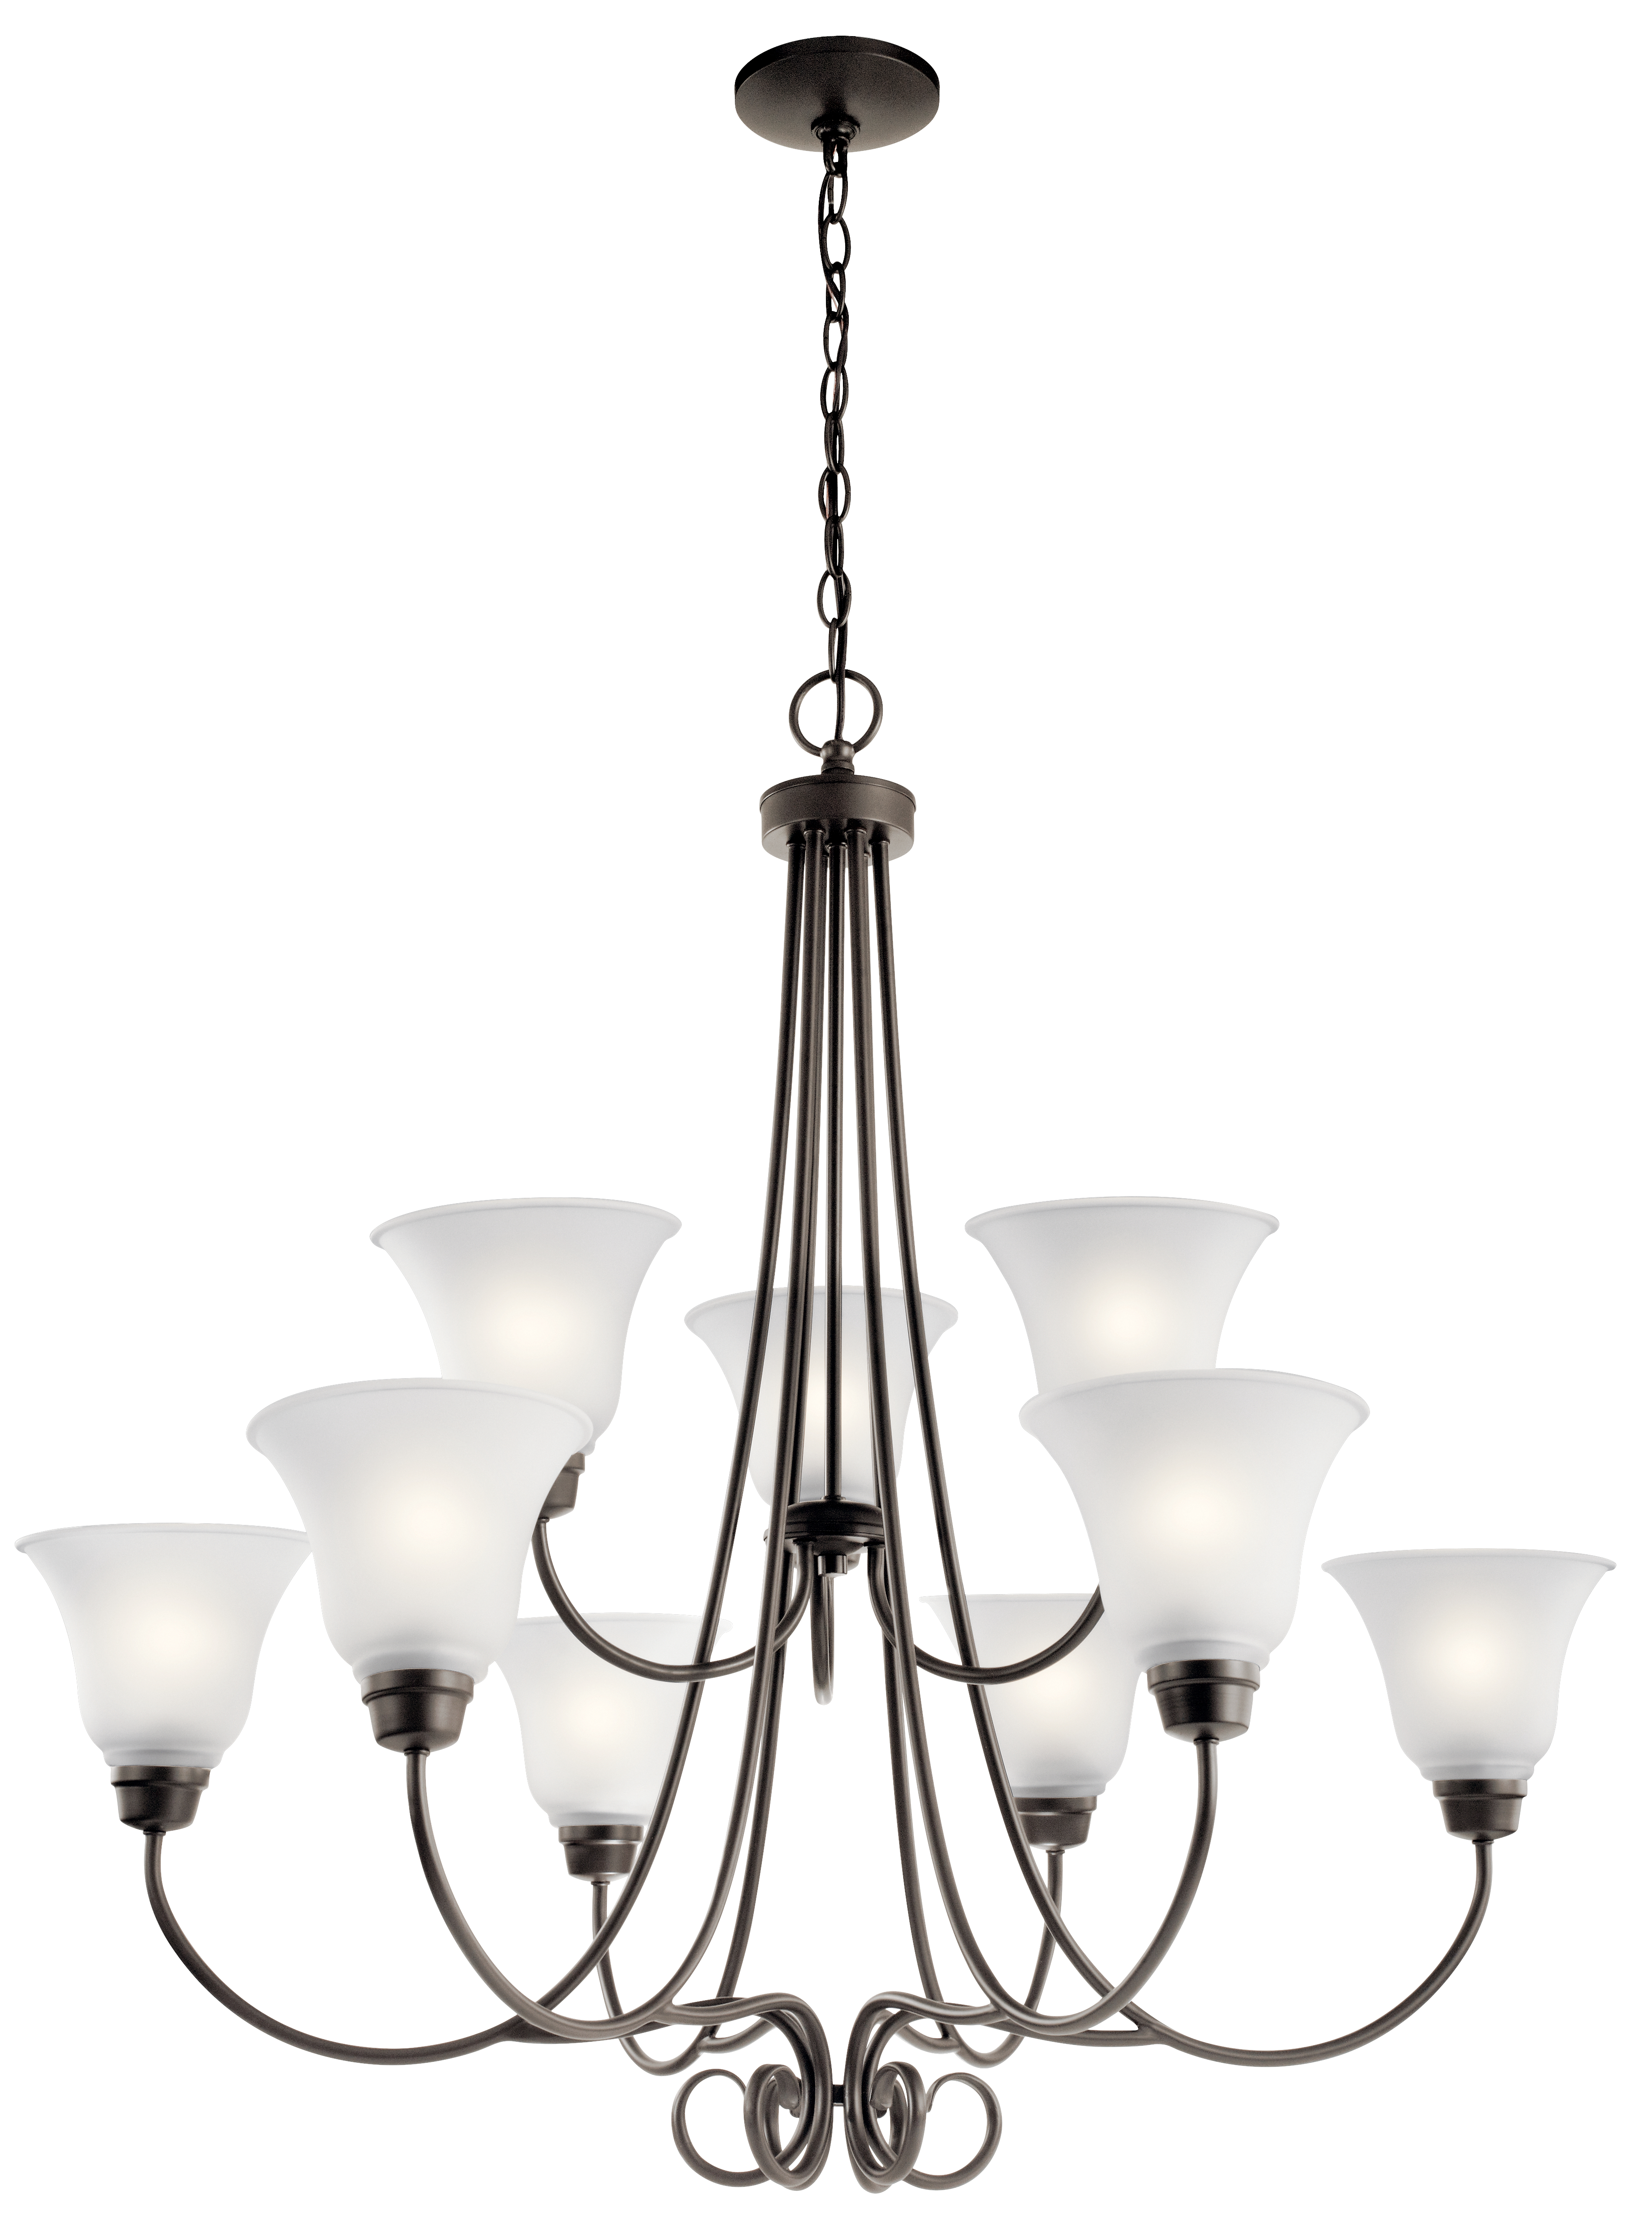 Kichler Bixler LED Chandelier with Satin Etched Shade - Olde Bronze (43939OZL16)